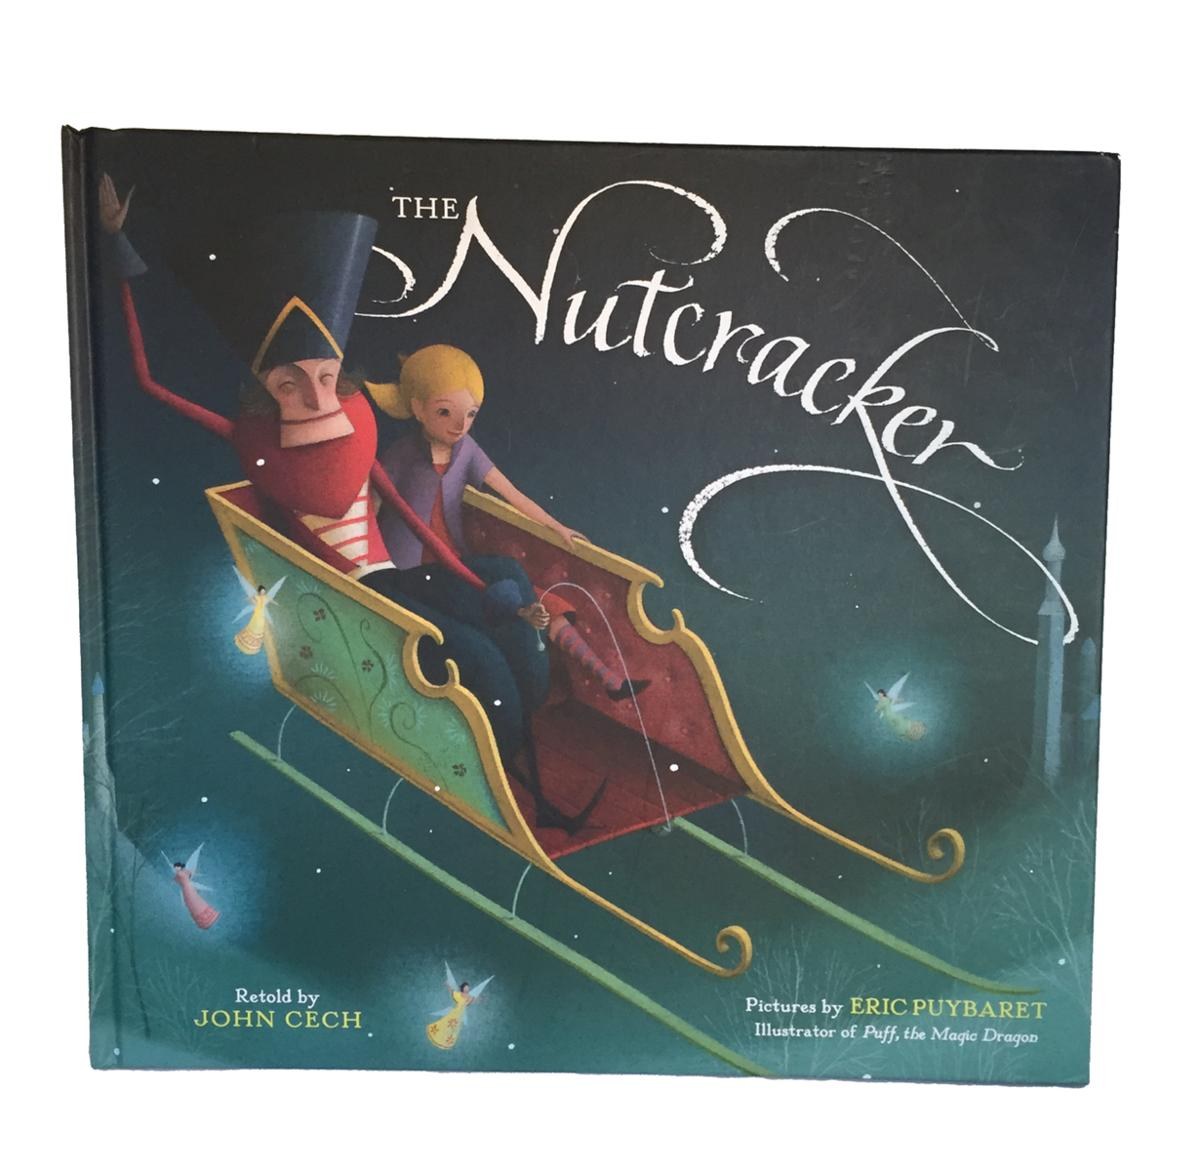 The Nutcracker Story Book